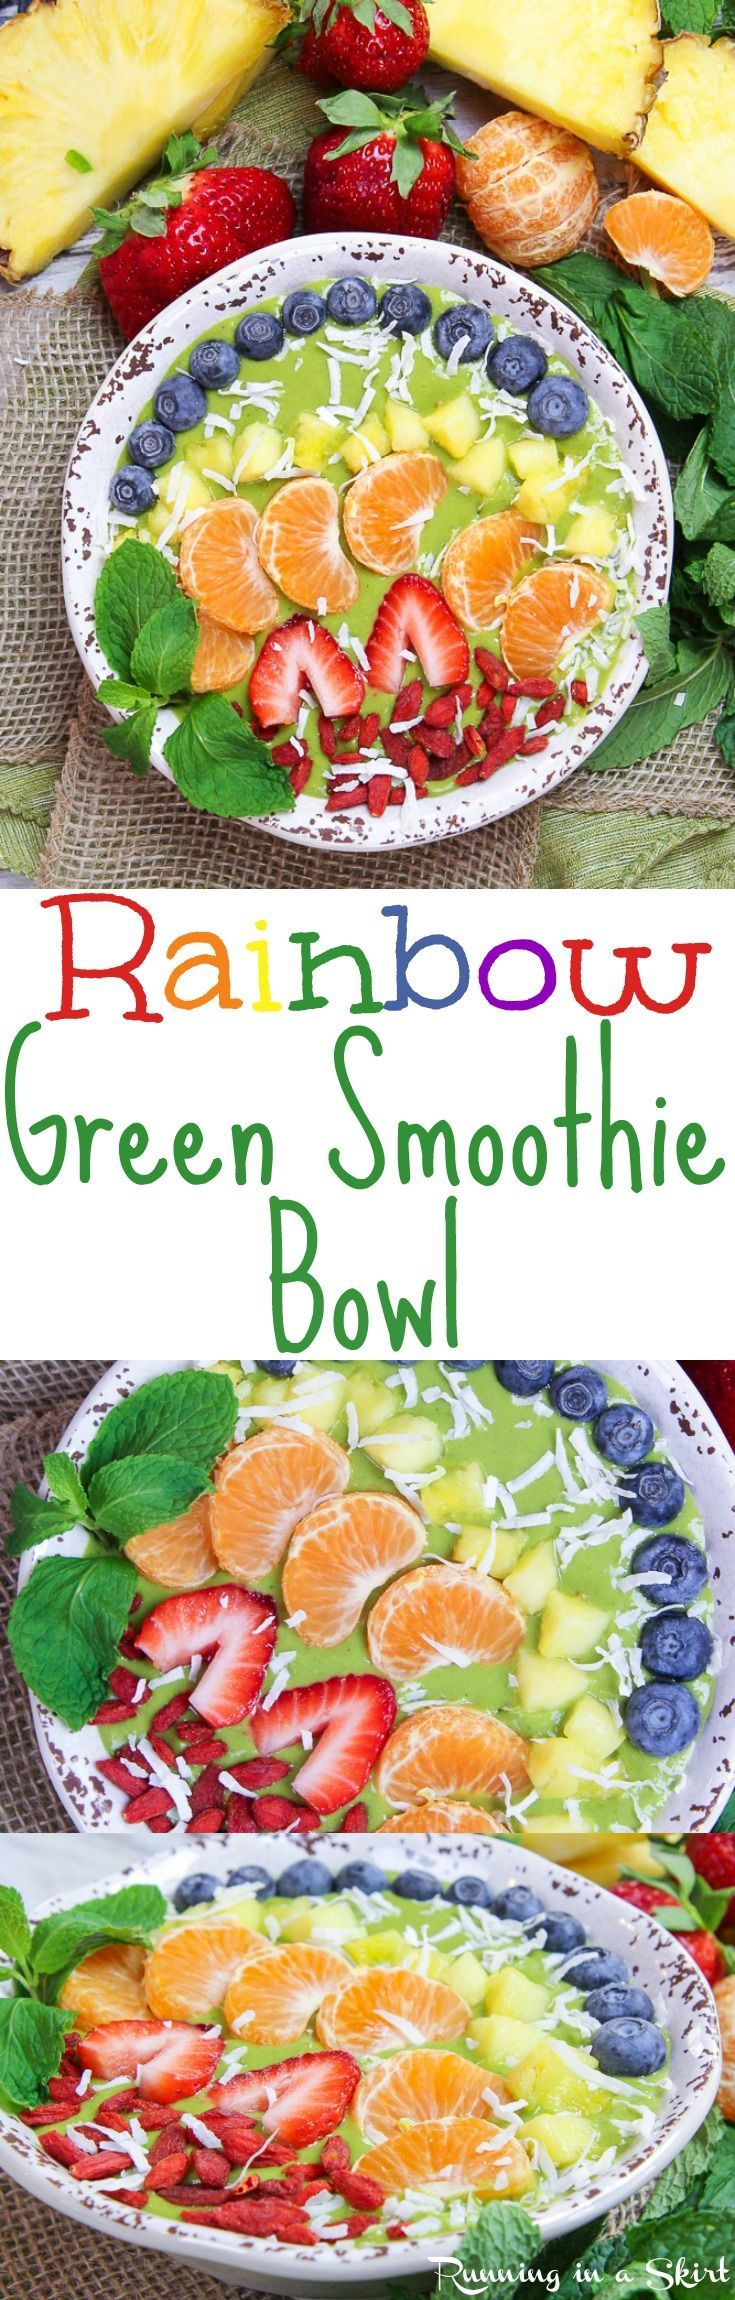 Rainbow Green Smoothie Bowl recipe. This healthy, vegan, easy breakfast uses mango plus spinach or kale! The fruit and berries toppings make the rainbow. Includes frozen banana but there is also a no banana option. Raw Vegan, Vegetarian, Clean Eating, Gluten Free & Dairy Free / Running in a Skirt